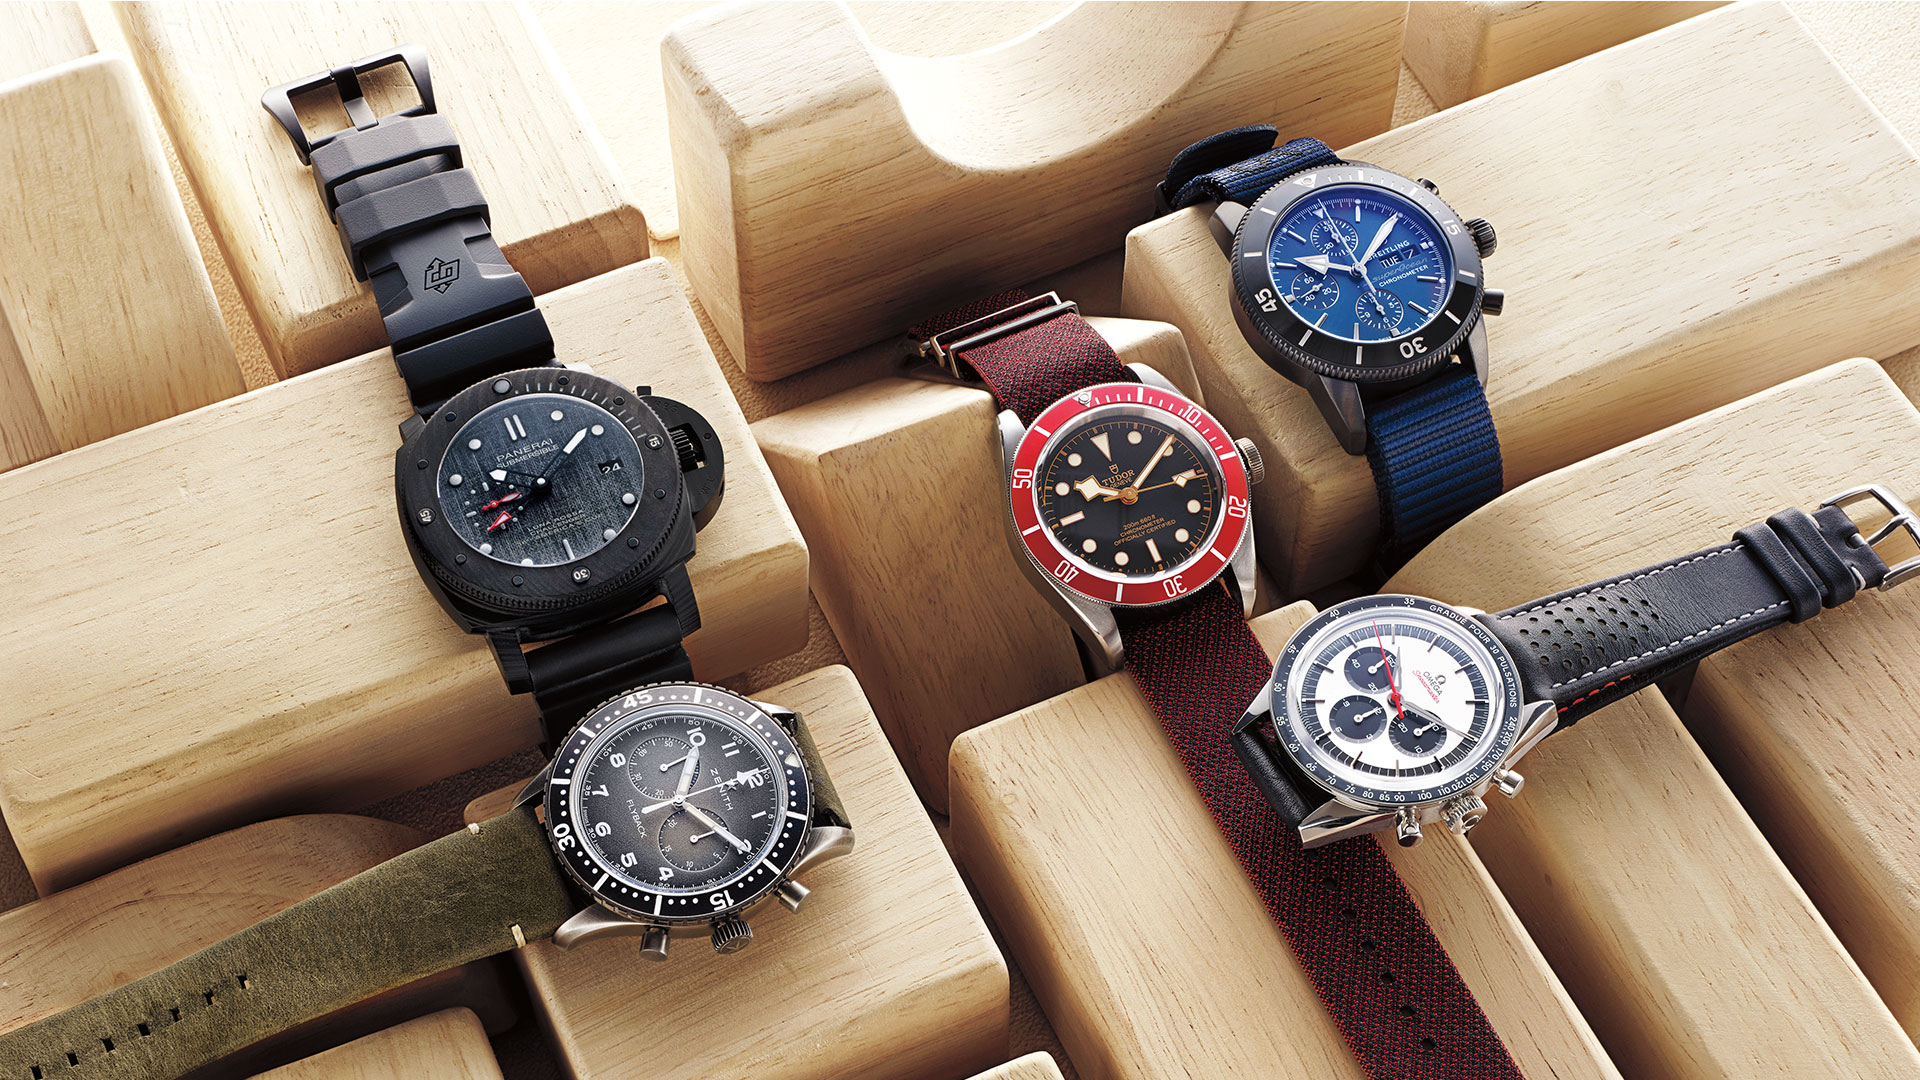 5 Luxury Watches New for Spring 2019 That Are Totally Worth the Splurge